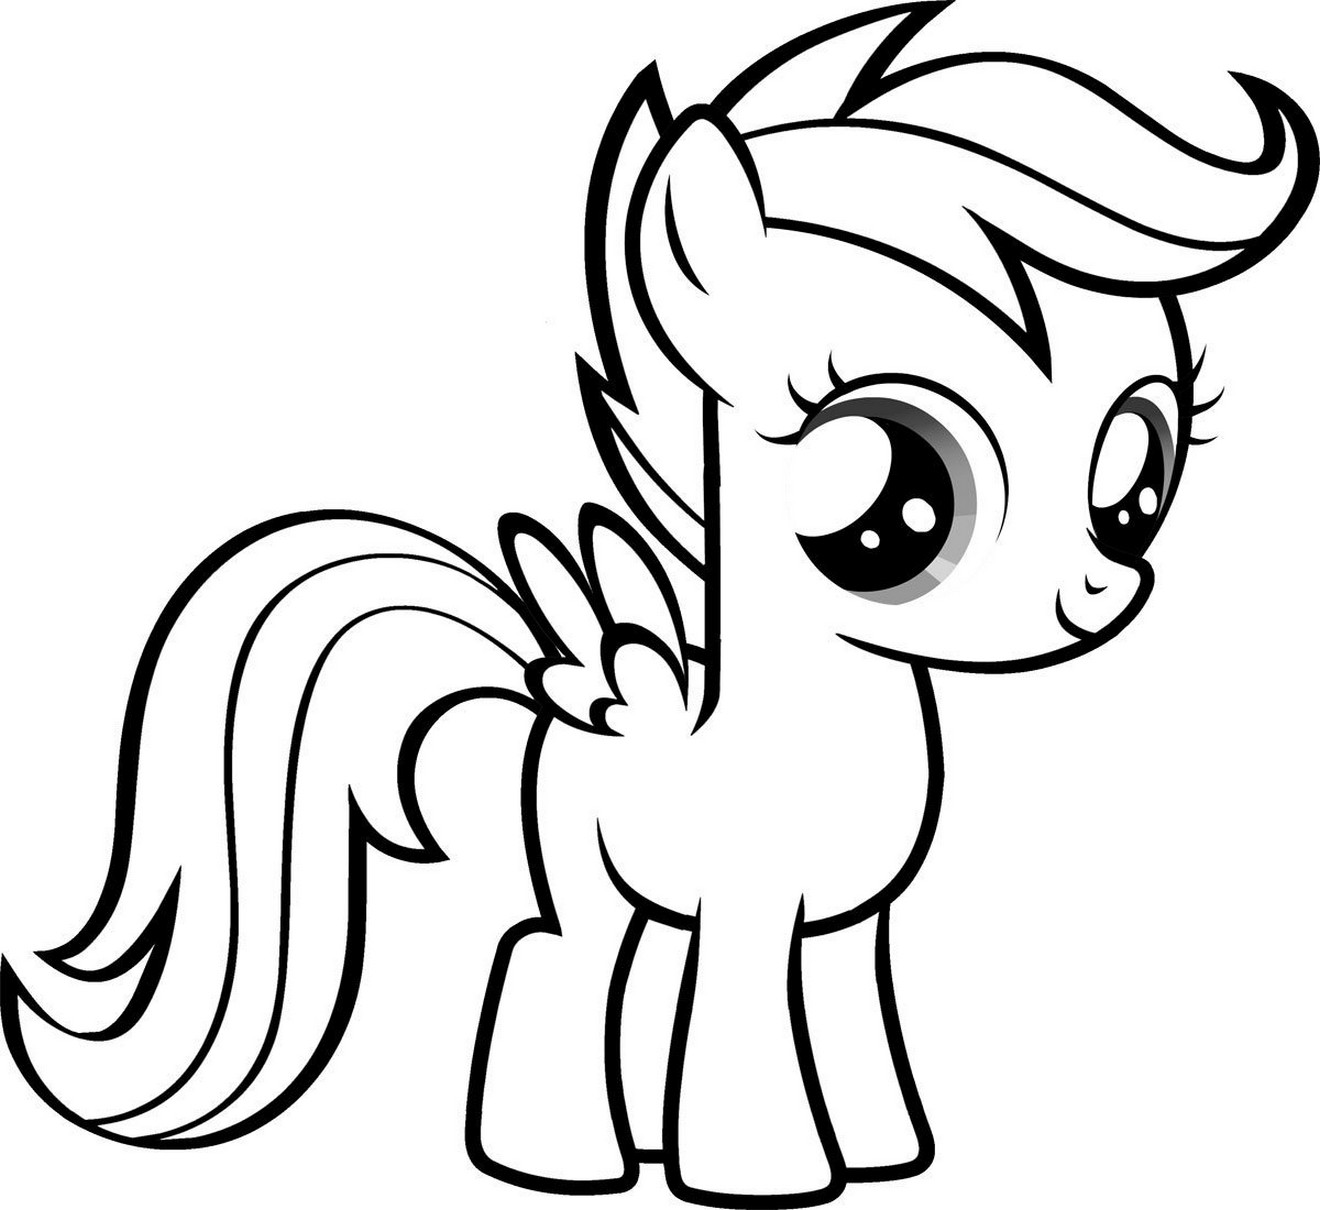 mlp printouts 70 best over the rainbow g3 in black and white images on printouts mlp